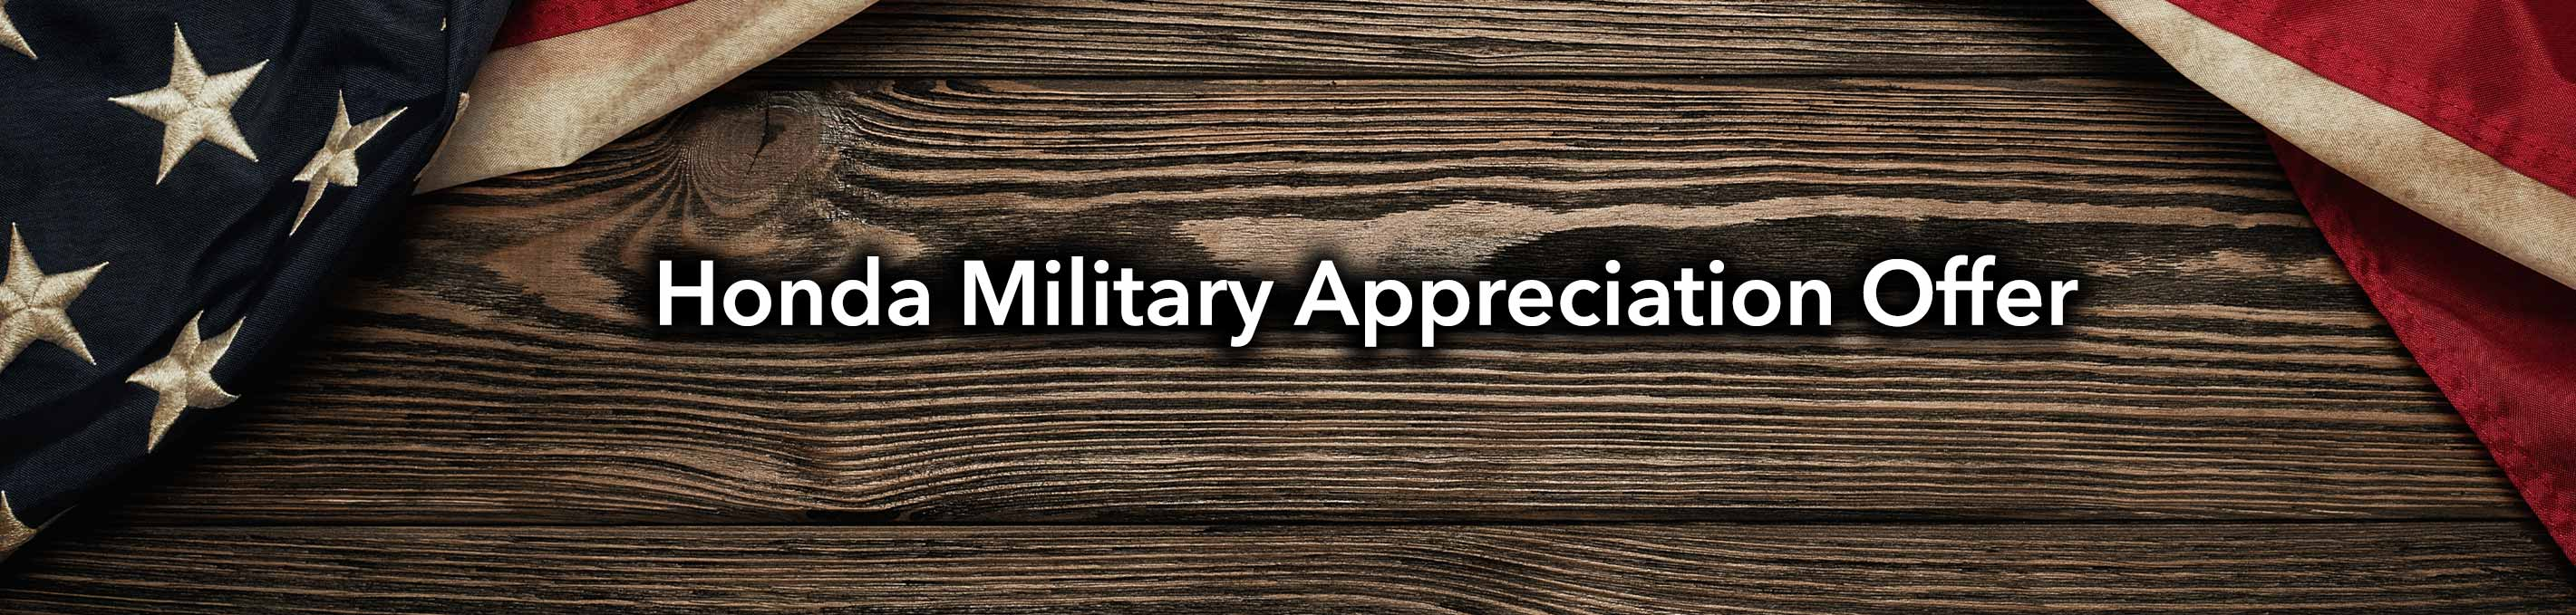 Honda of Tomball Military Appreciation Offer